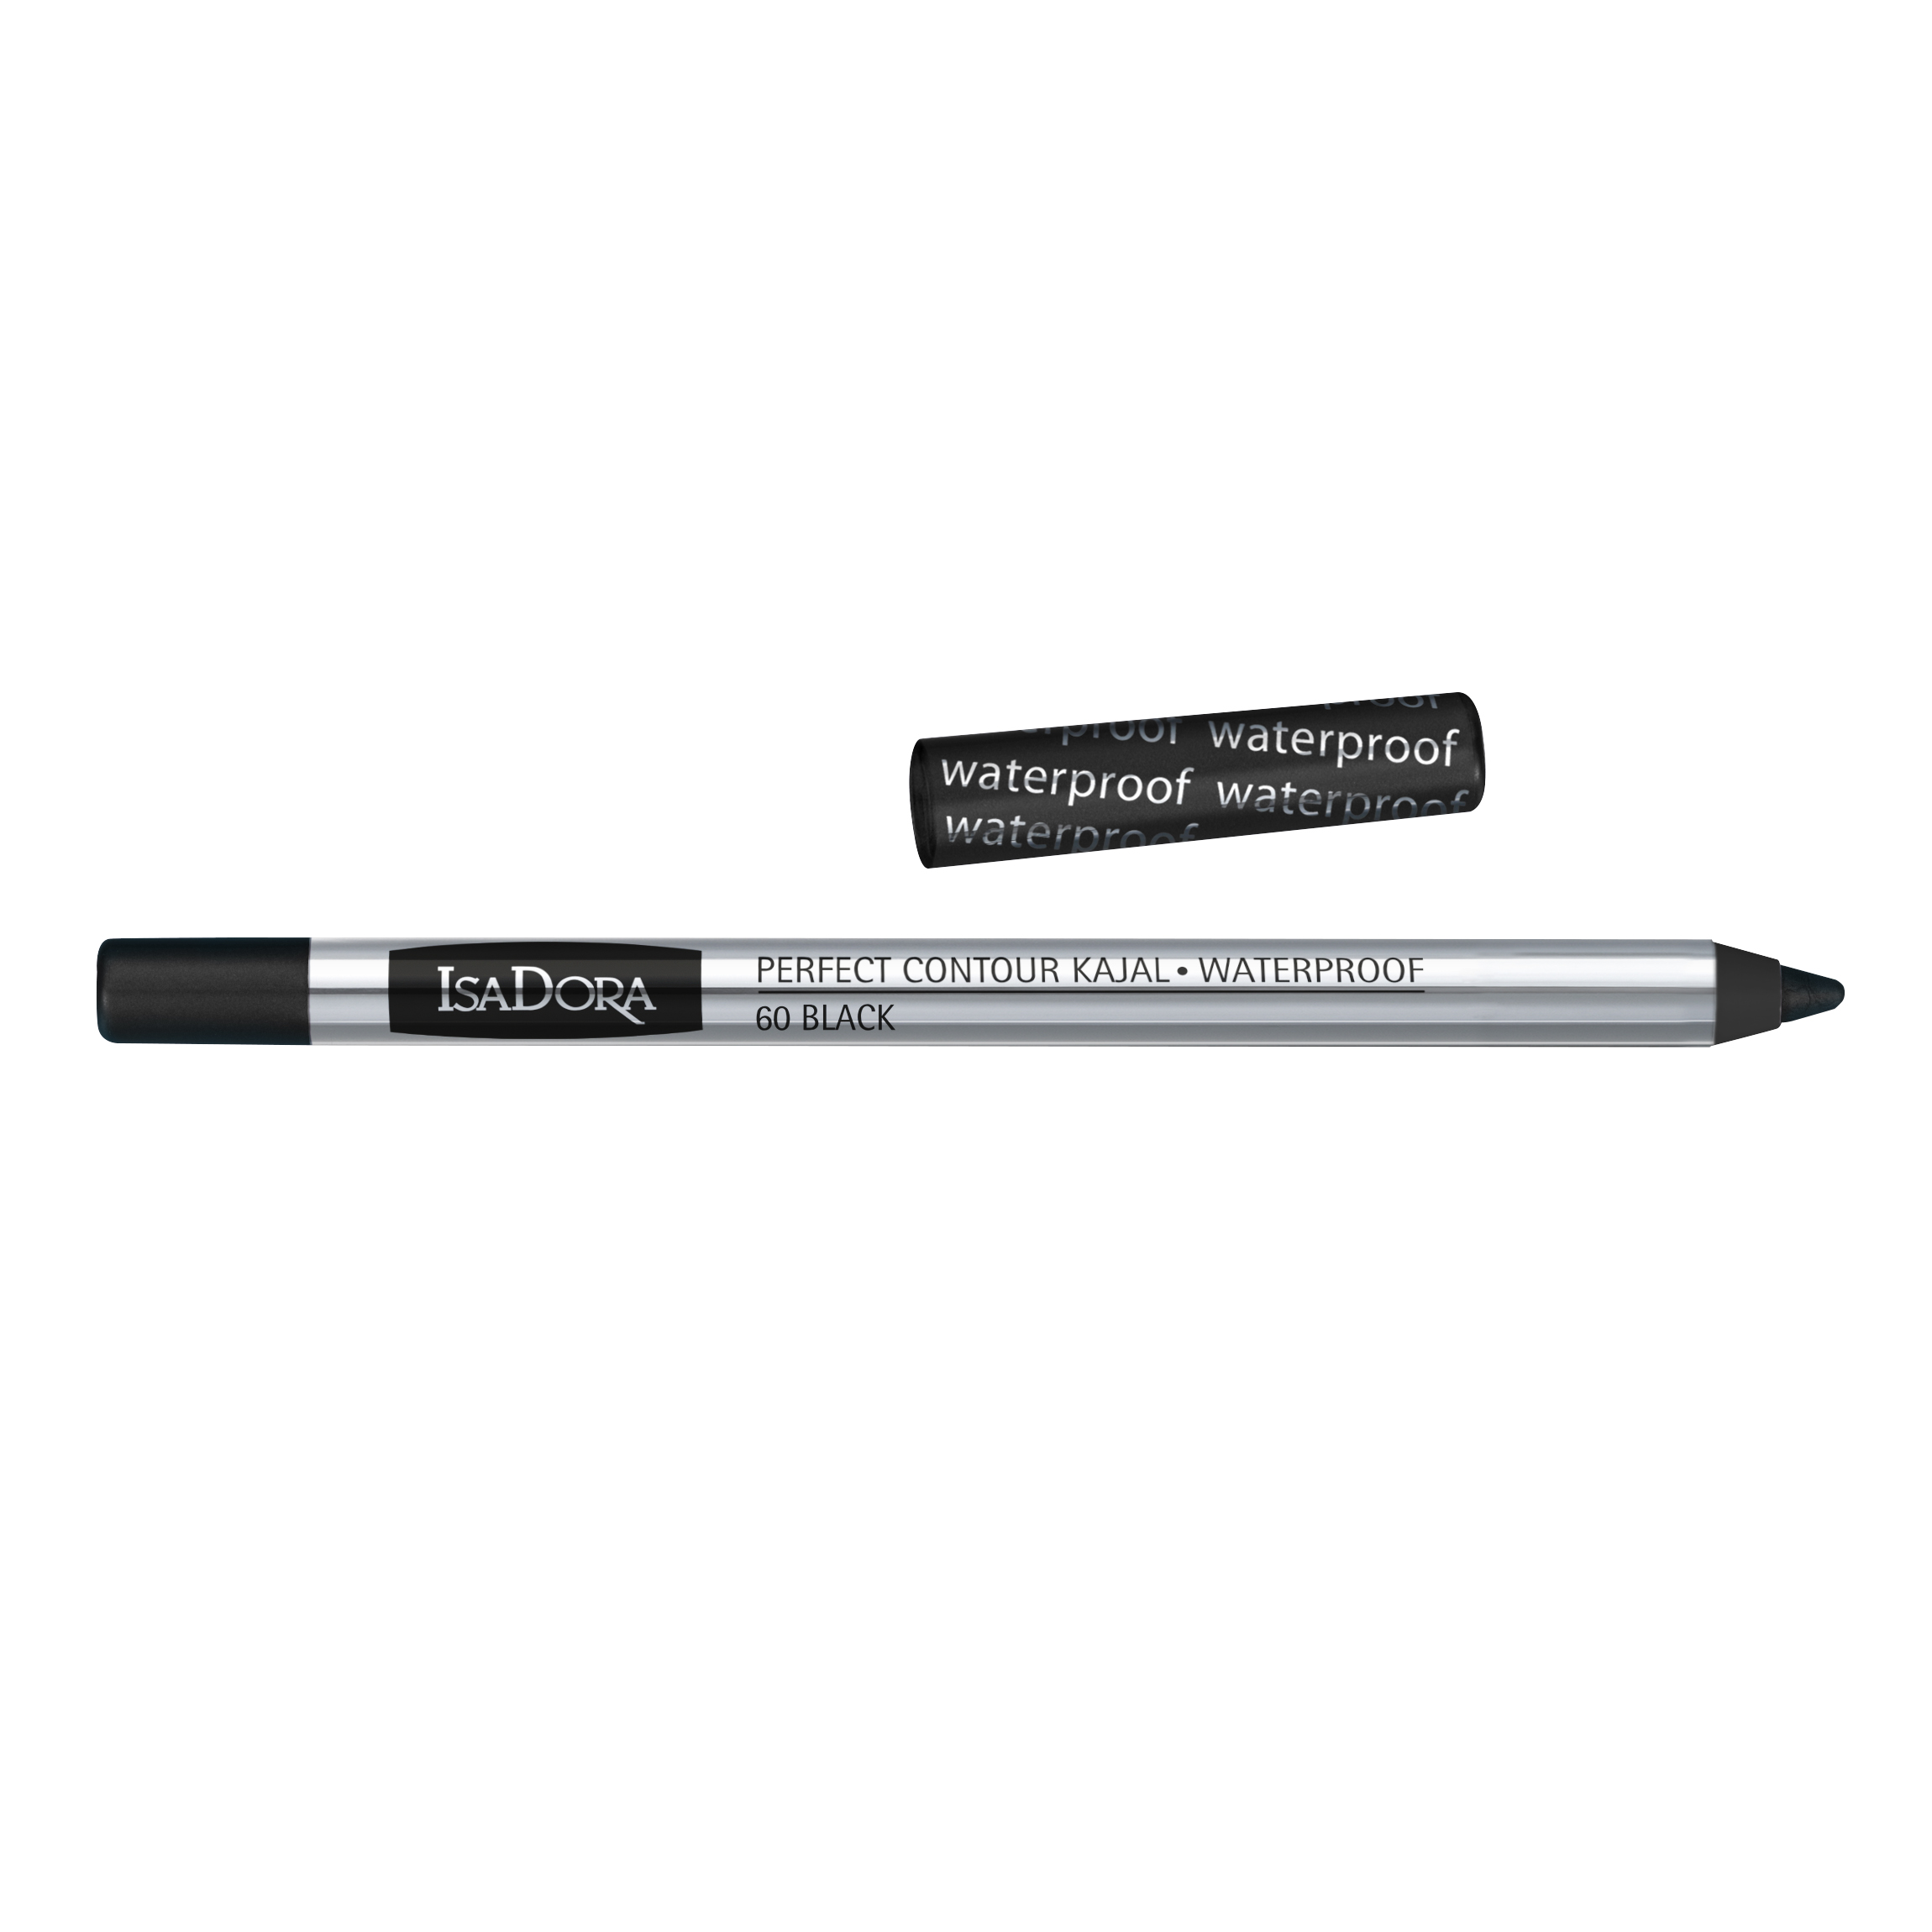 Perfect Contour Kajal Waterproof 60 Black